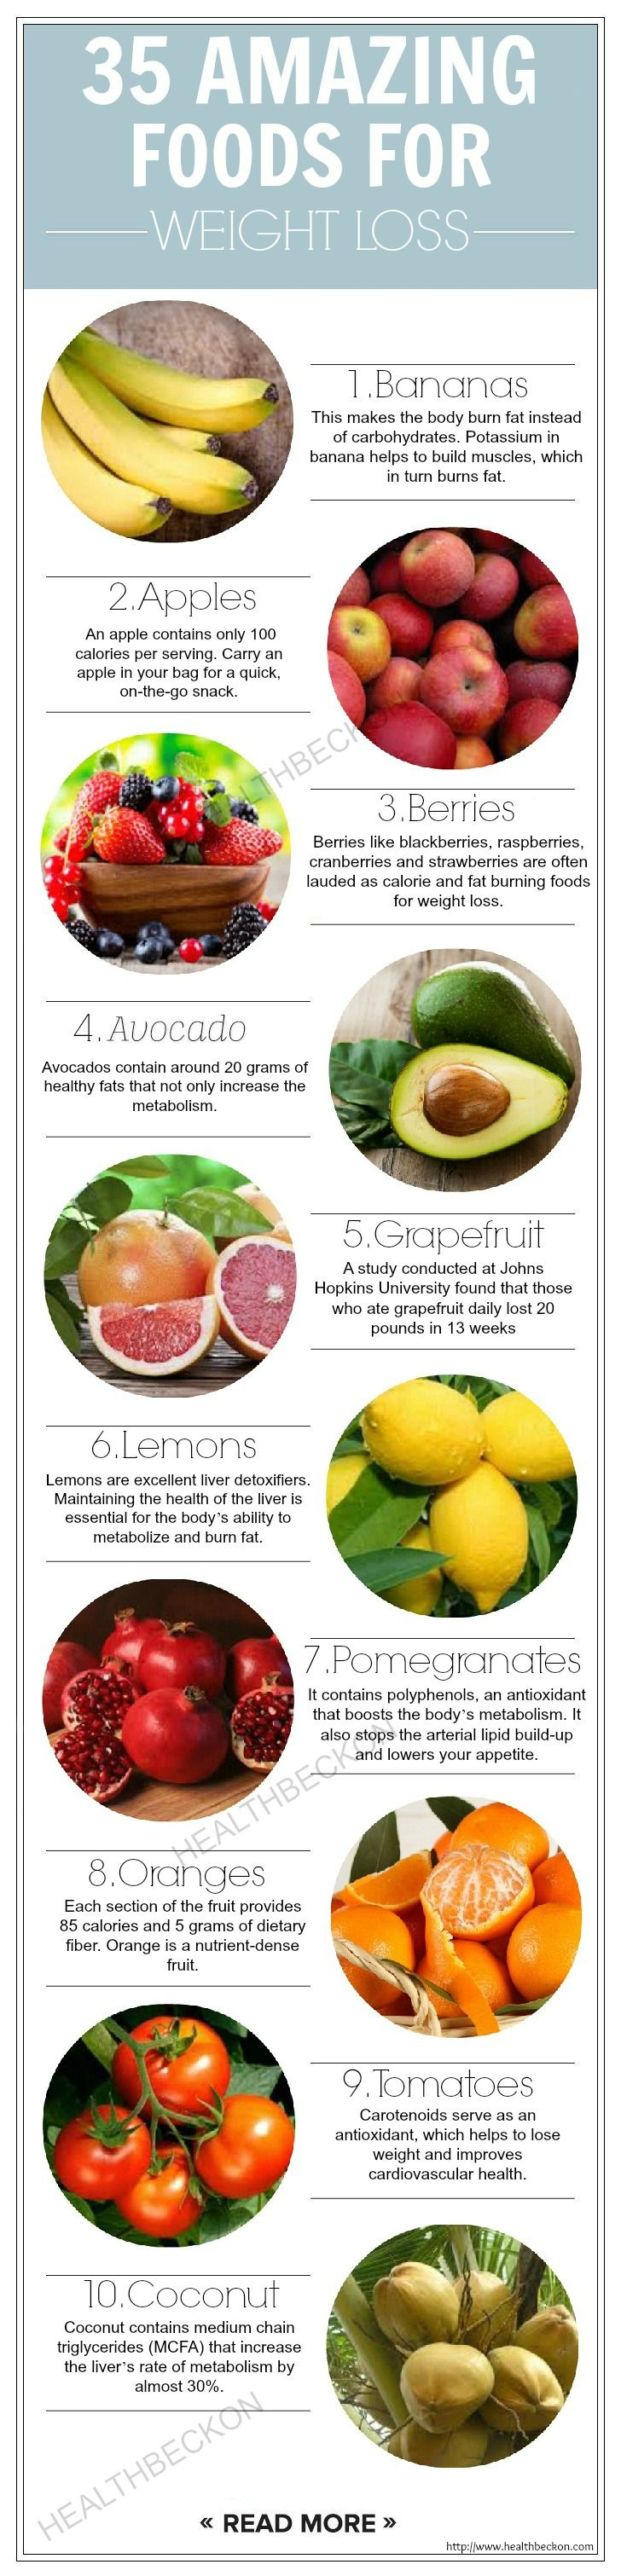 Juicing recipes for detoxing and weight loss salud dietas y saludable healthy diet food recipe lose weight figure body forumfinder Image collections